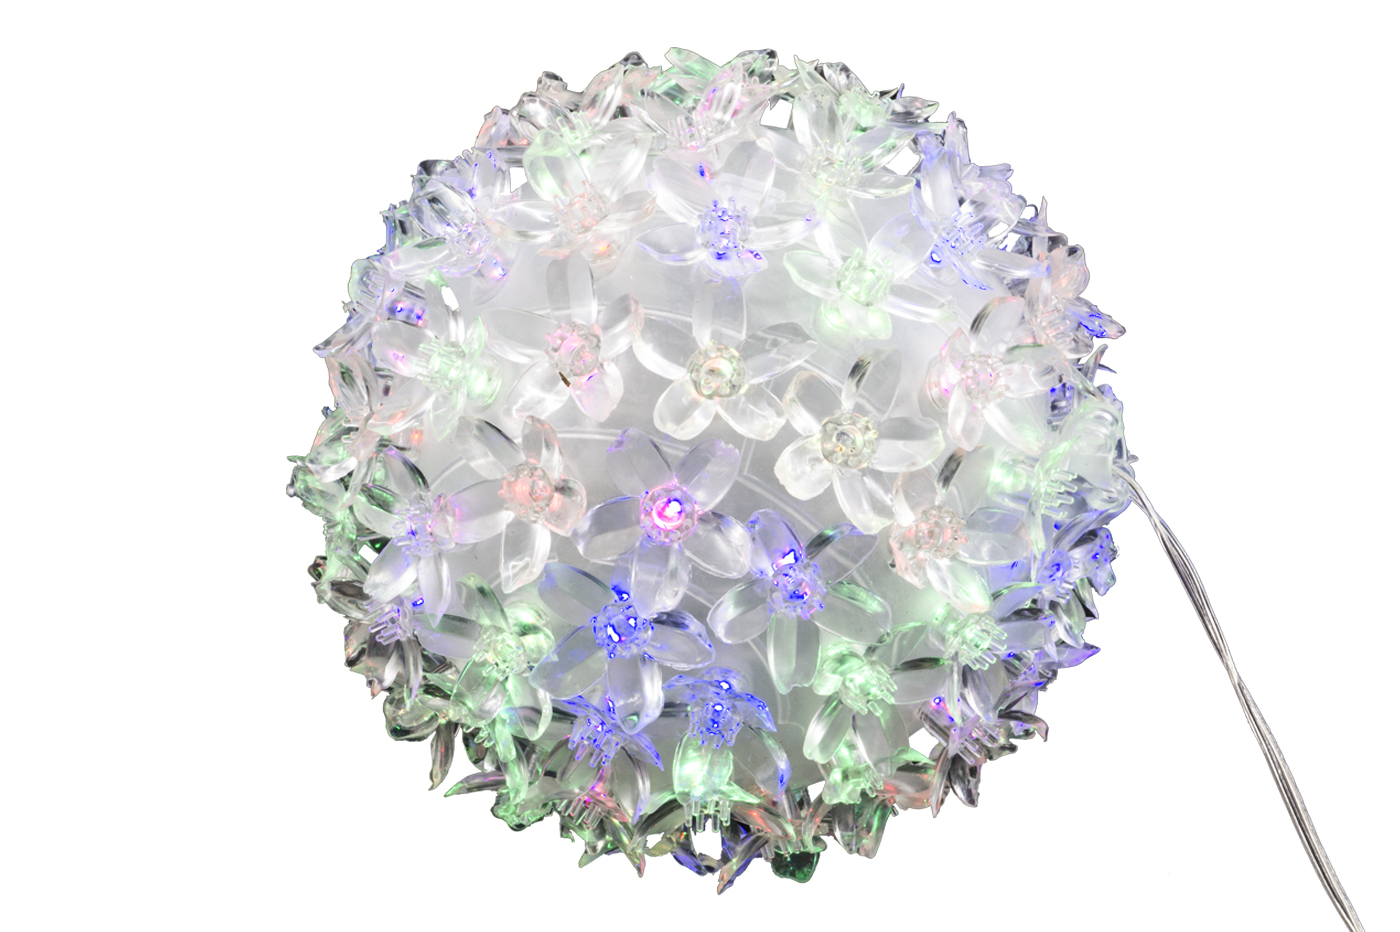 PALLA 50 LED SFERA LUMINOSA NATALE DECORAZIONI FIORI LUCI NATALIZIE MULTICOLOR